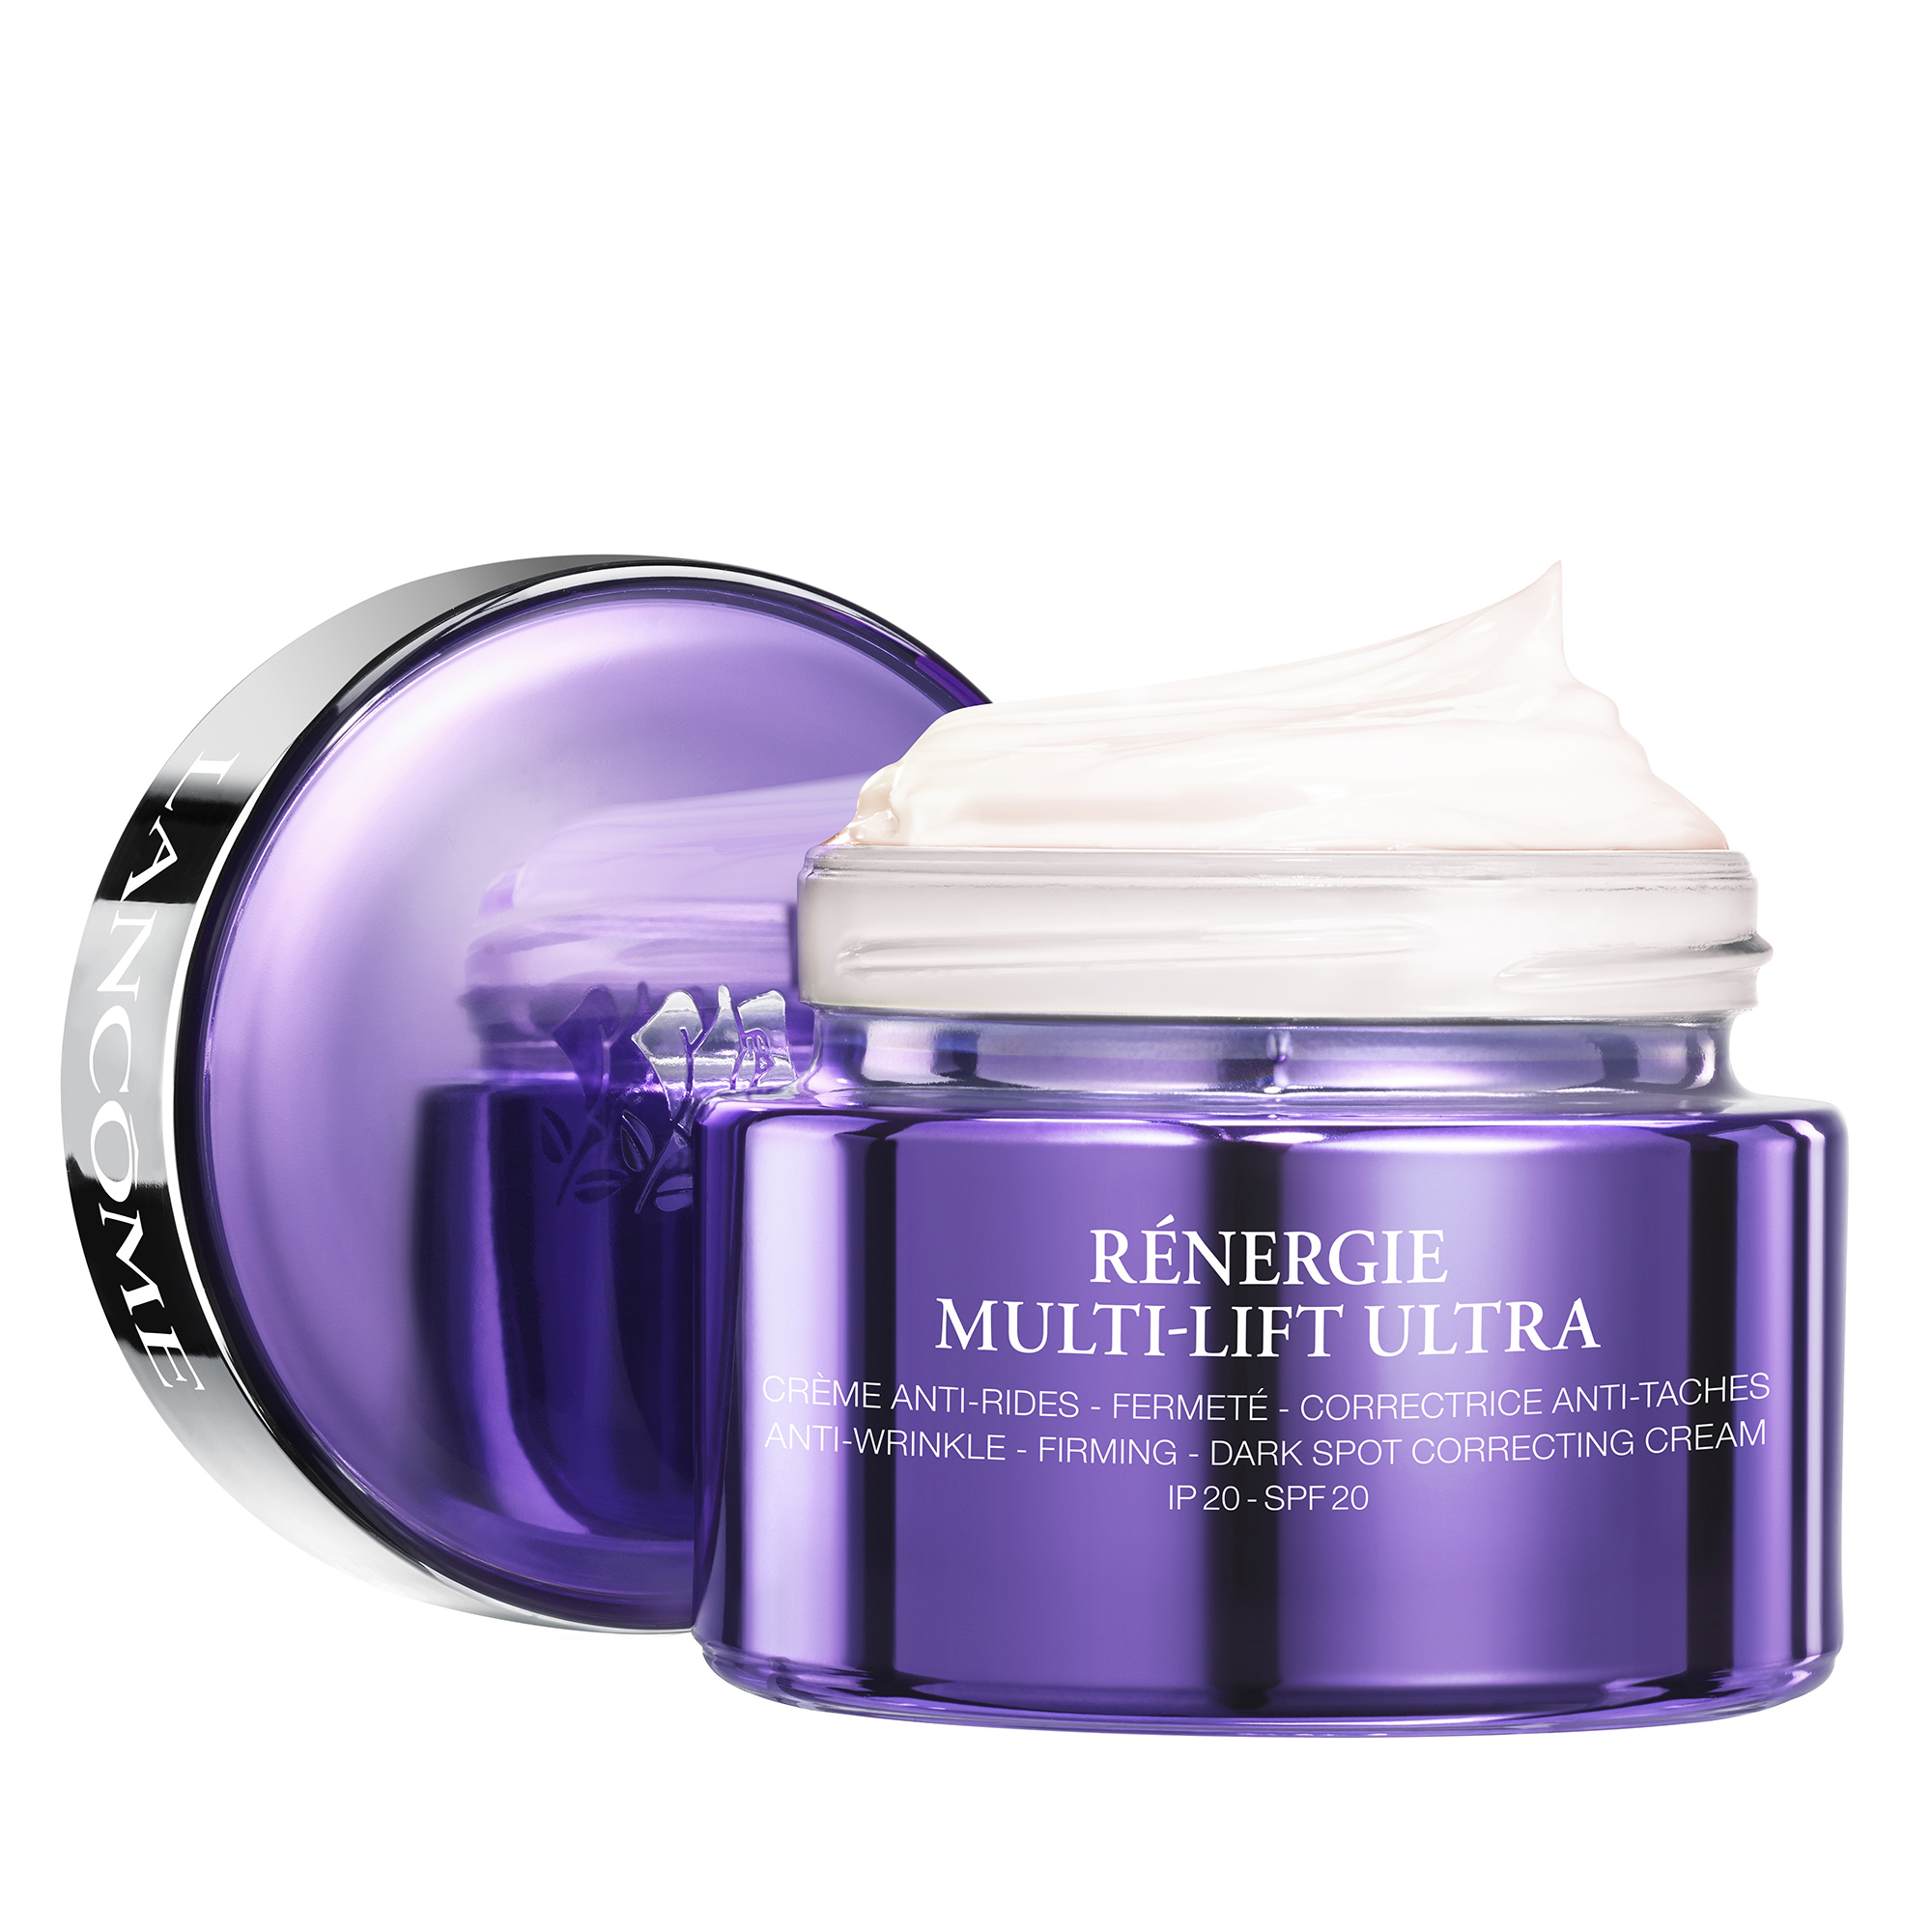 Rénergie Multi-Lift Ultra Cream SPF 20